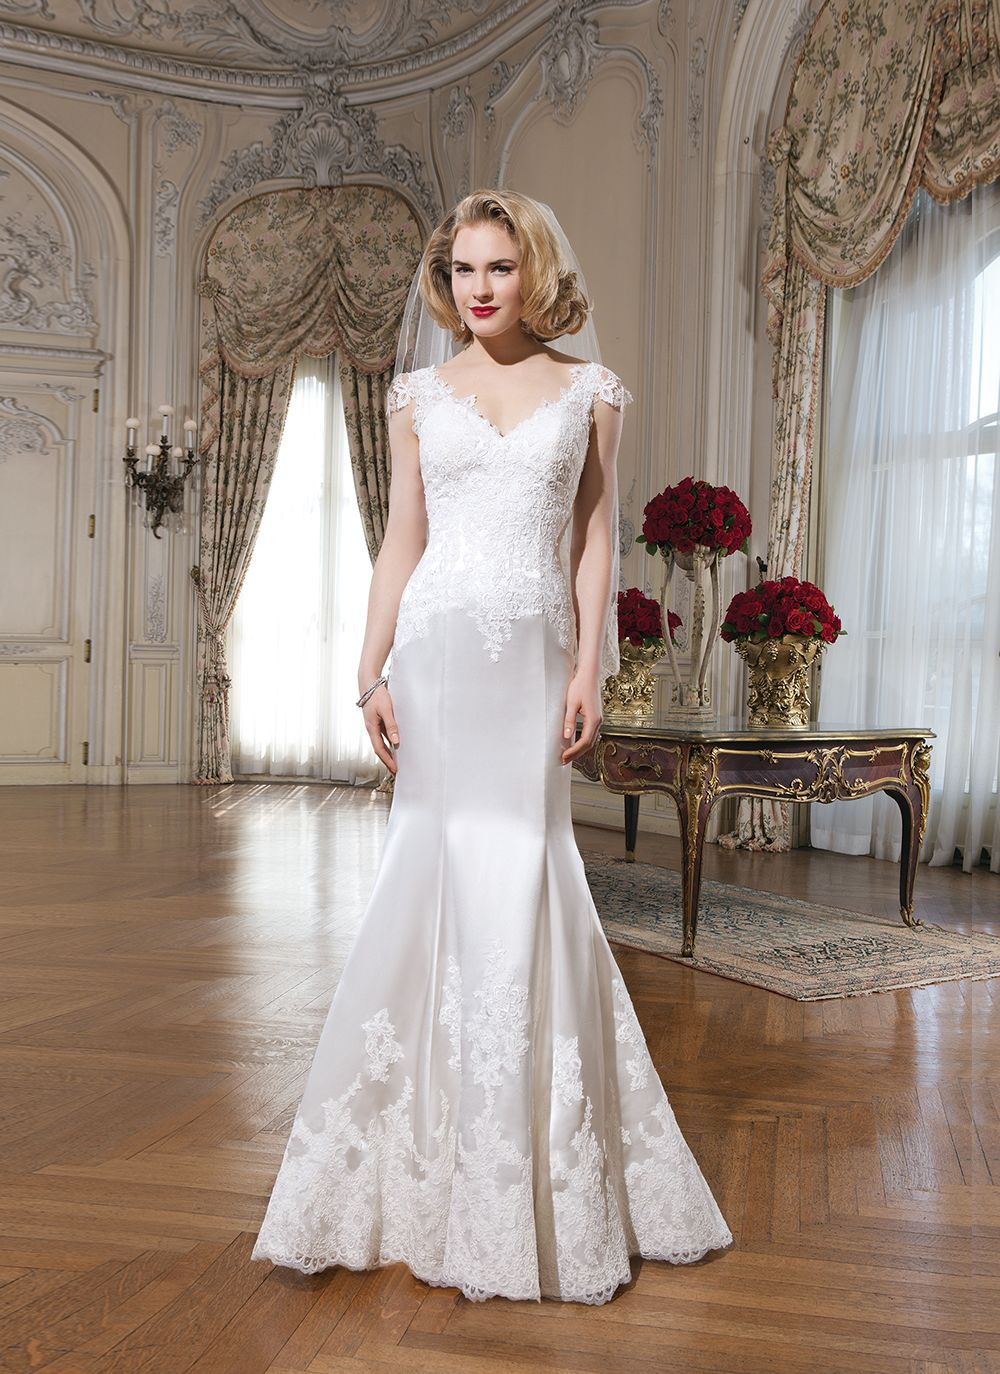 c6a6f75ccf570     Justin Alexander wedding dresses style 8730 Luxe charmeuse fit and  flare gown with Venice lace V-neckline